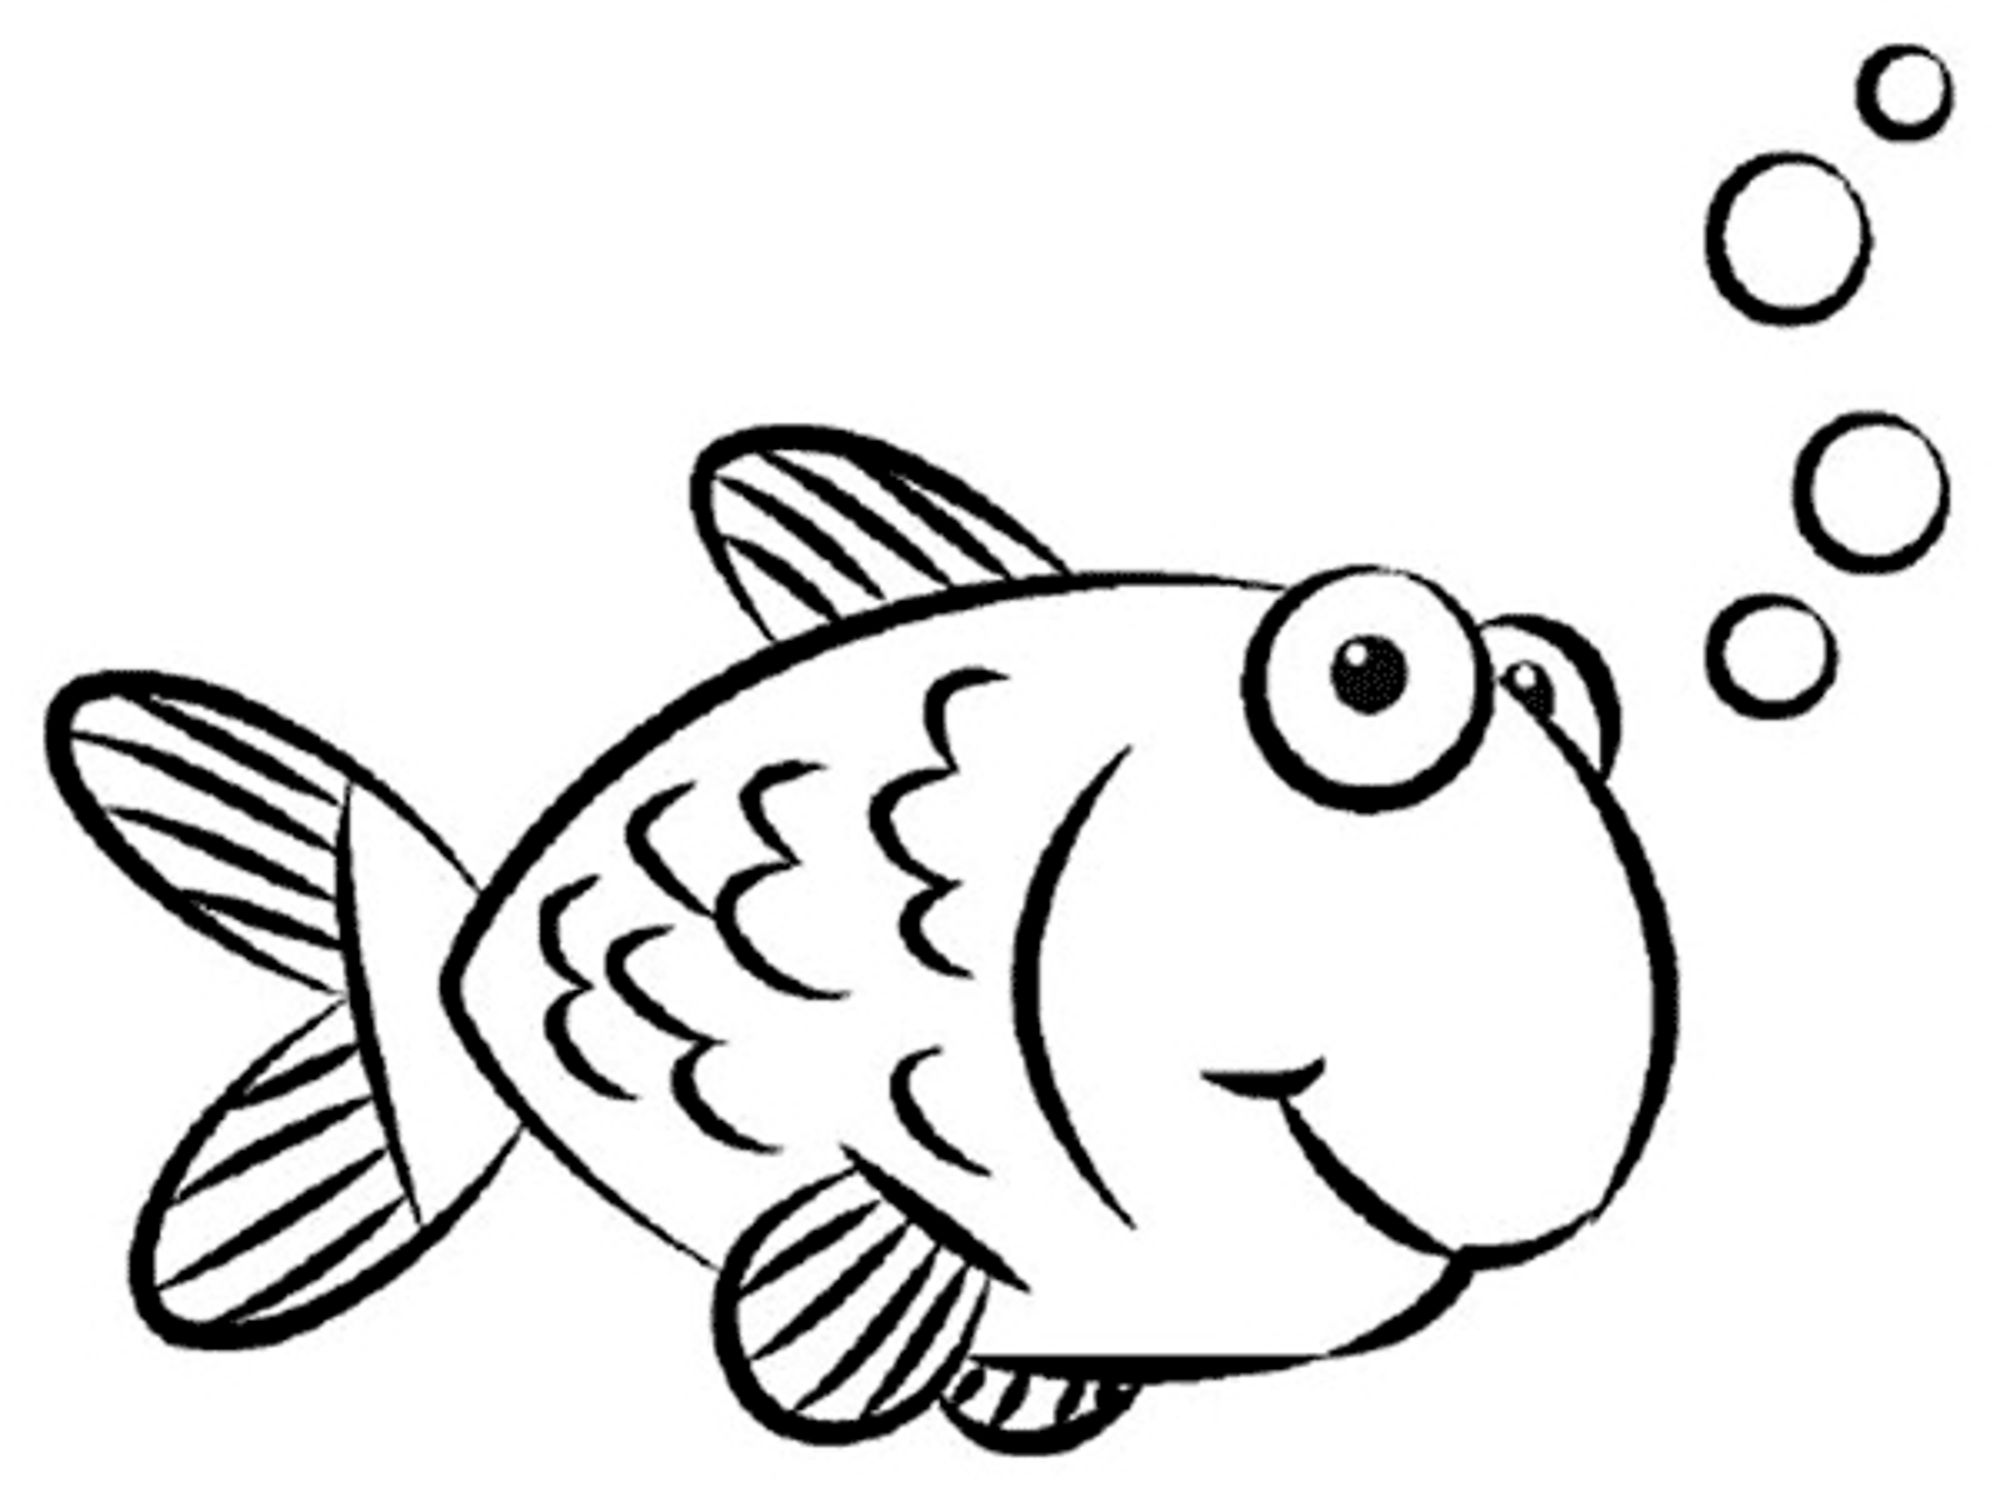 Coloring pages for kids clipart png royalty free stock Coloring Pages : Free Fish Drawing For Kids Download Clip Art On ... png royalty free stock